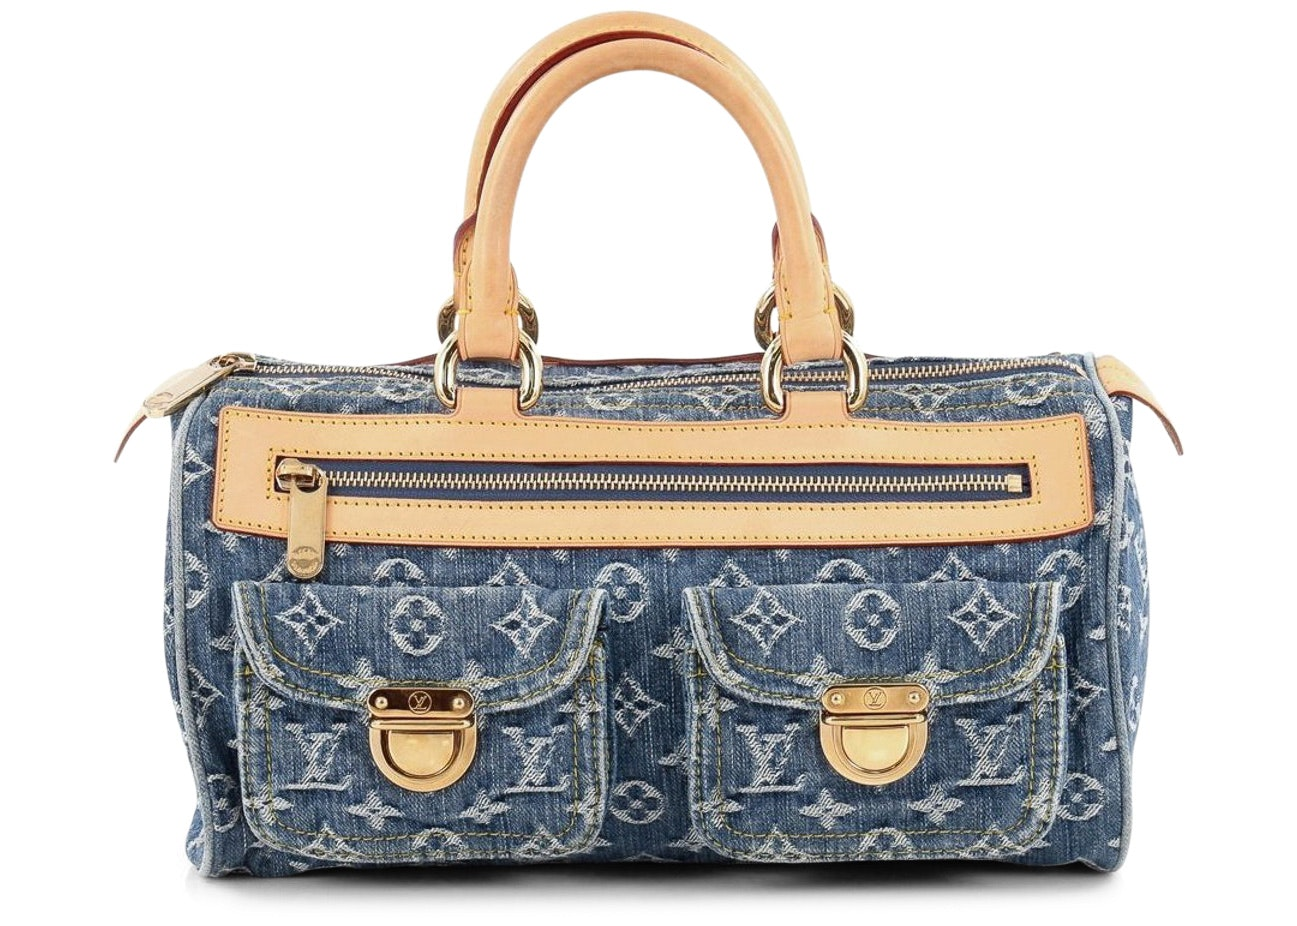 Louis Vuitton Speedy Neo Monogram Denim Blue